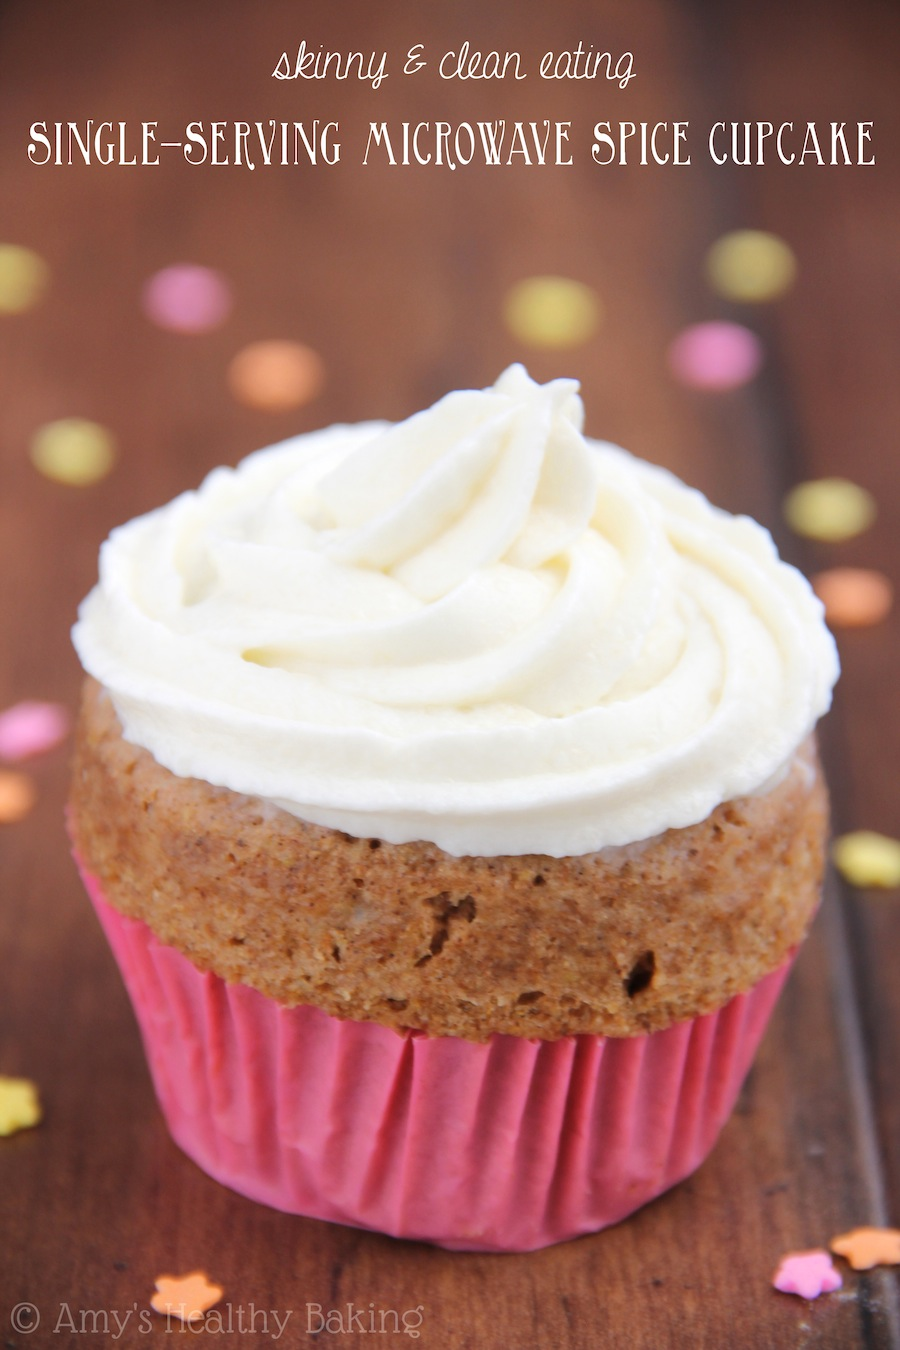 Skinny Single-Serving Microwave Spice Cupcake | Amy's Healthy Baking